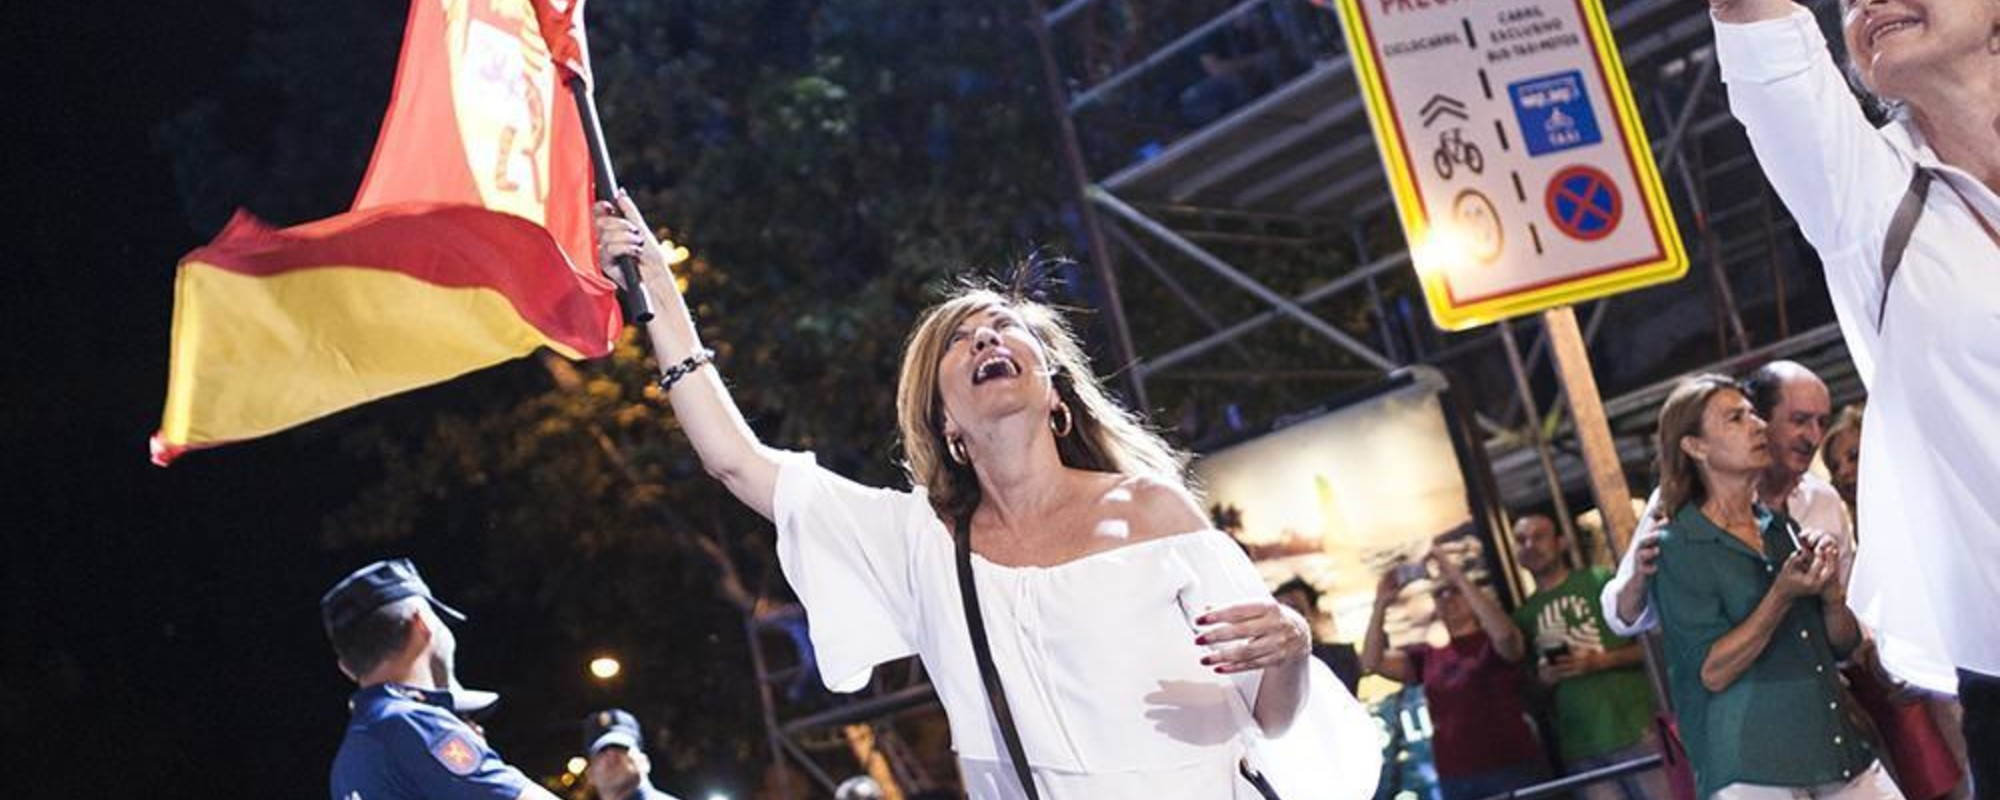 Spanish People Celebrate an Election Result That Changed Absolutely Nothing